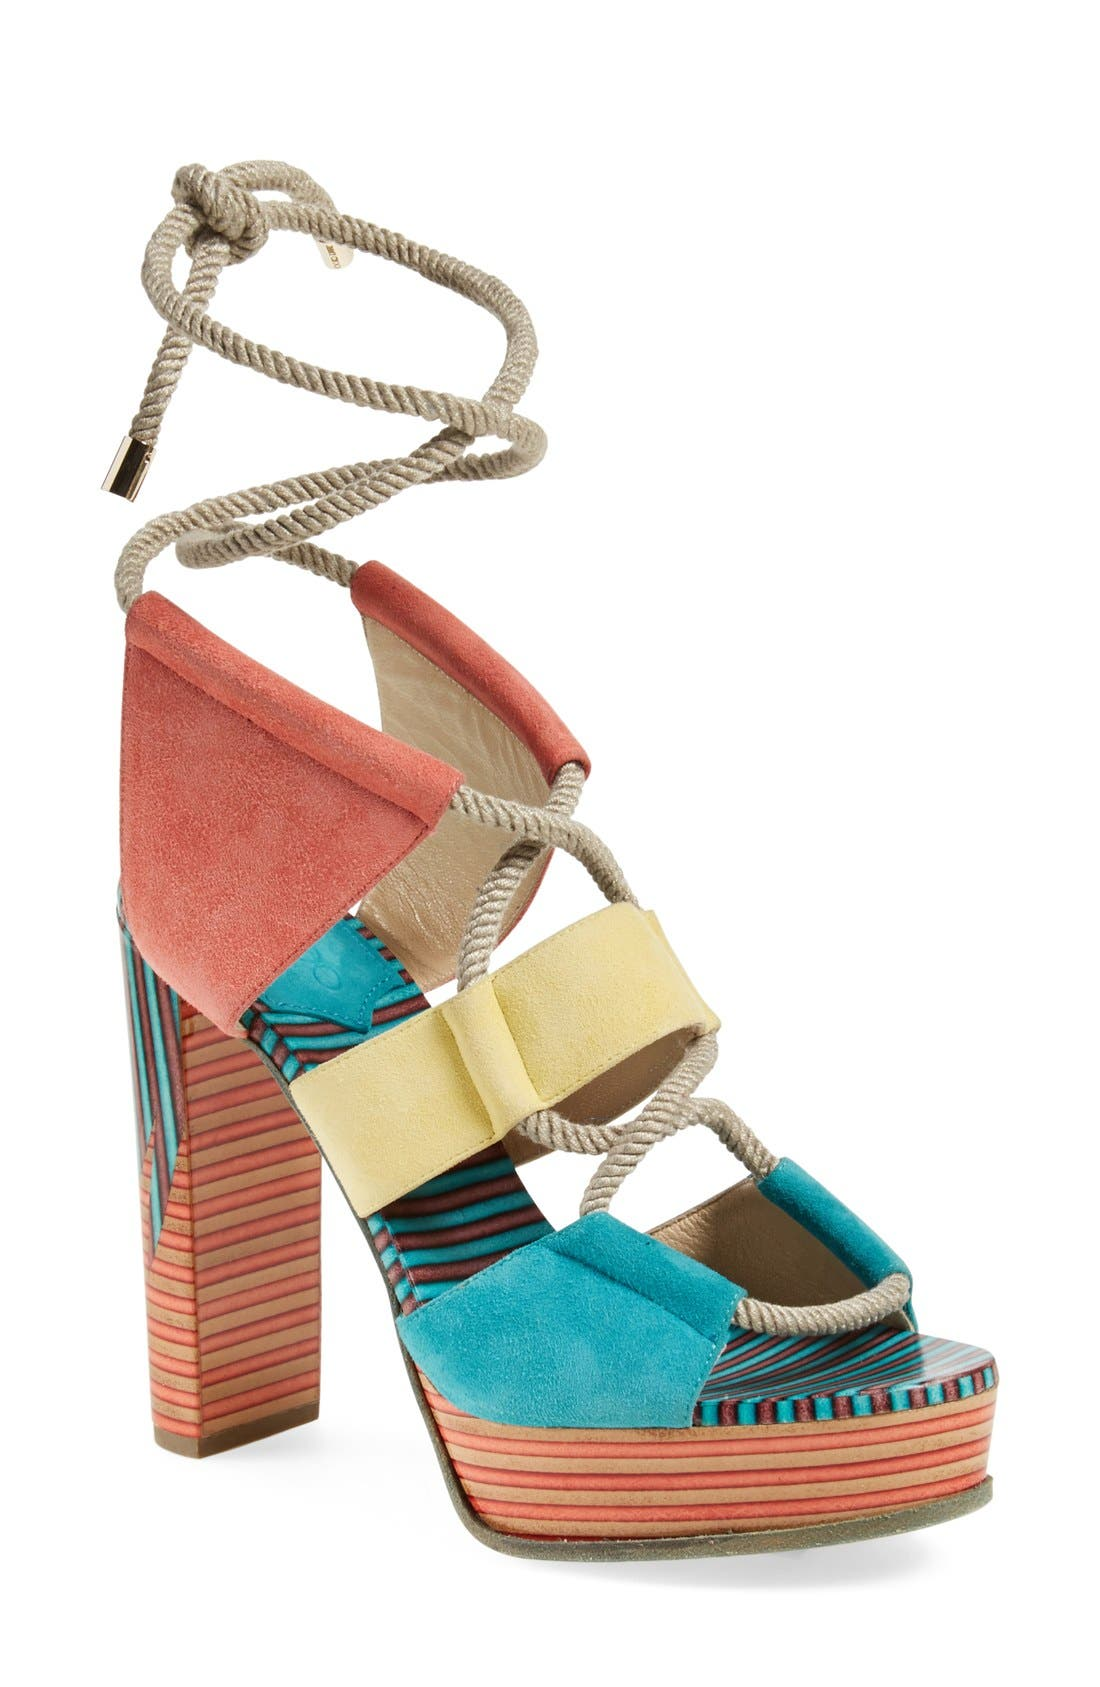 JIMMY CHOO 'Halley' Platform Sandal, Main, color, 400